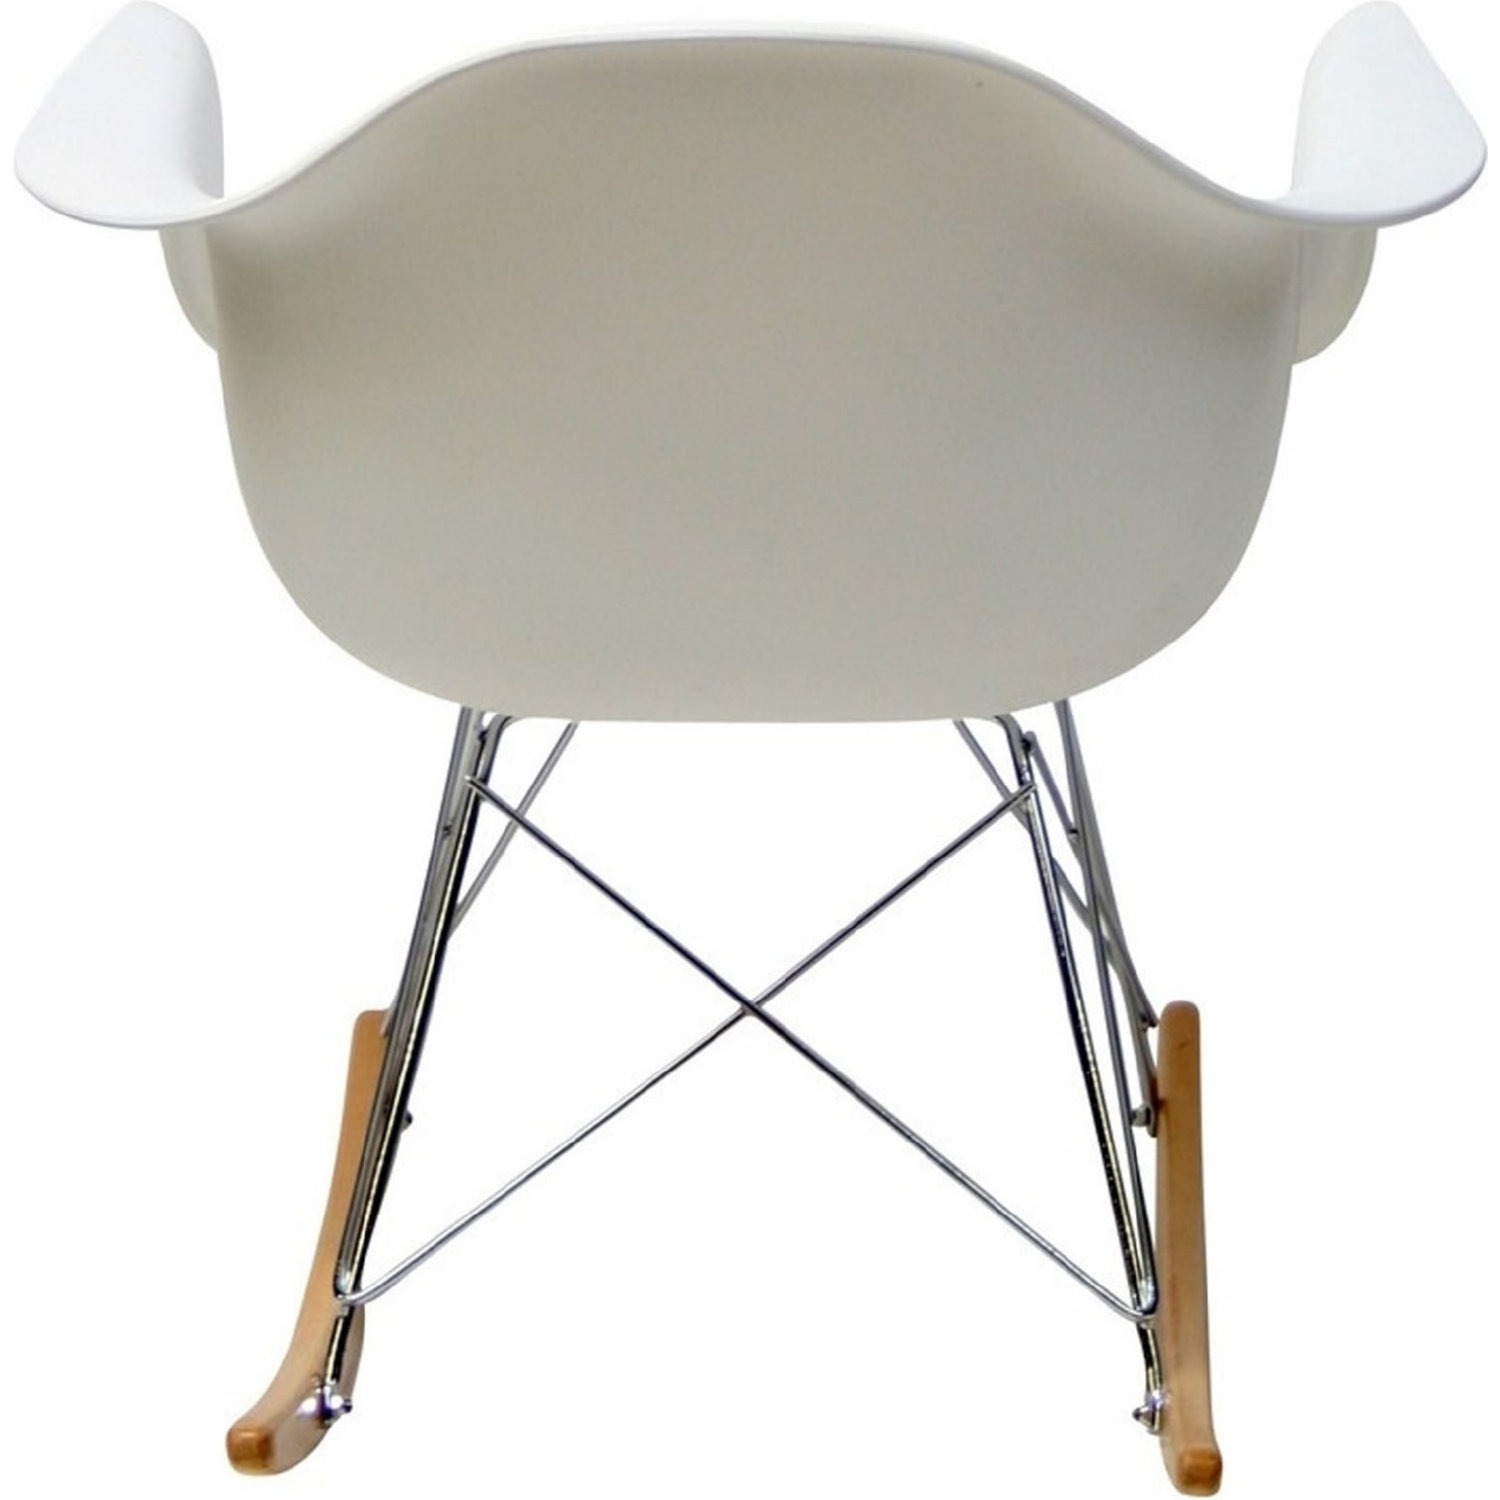 Accent Chair In White Plastic W/ Chrome Finish - image-3